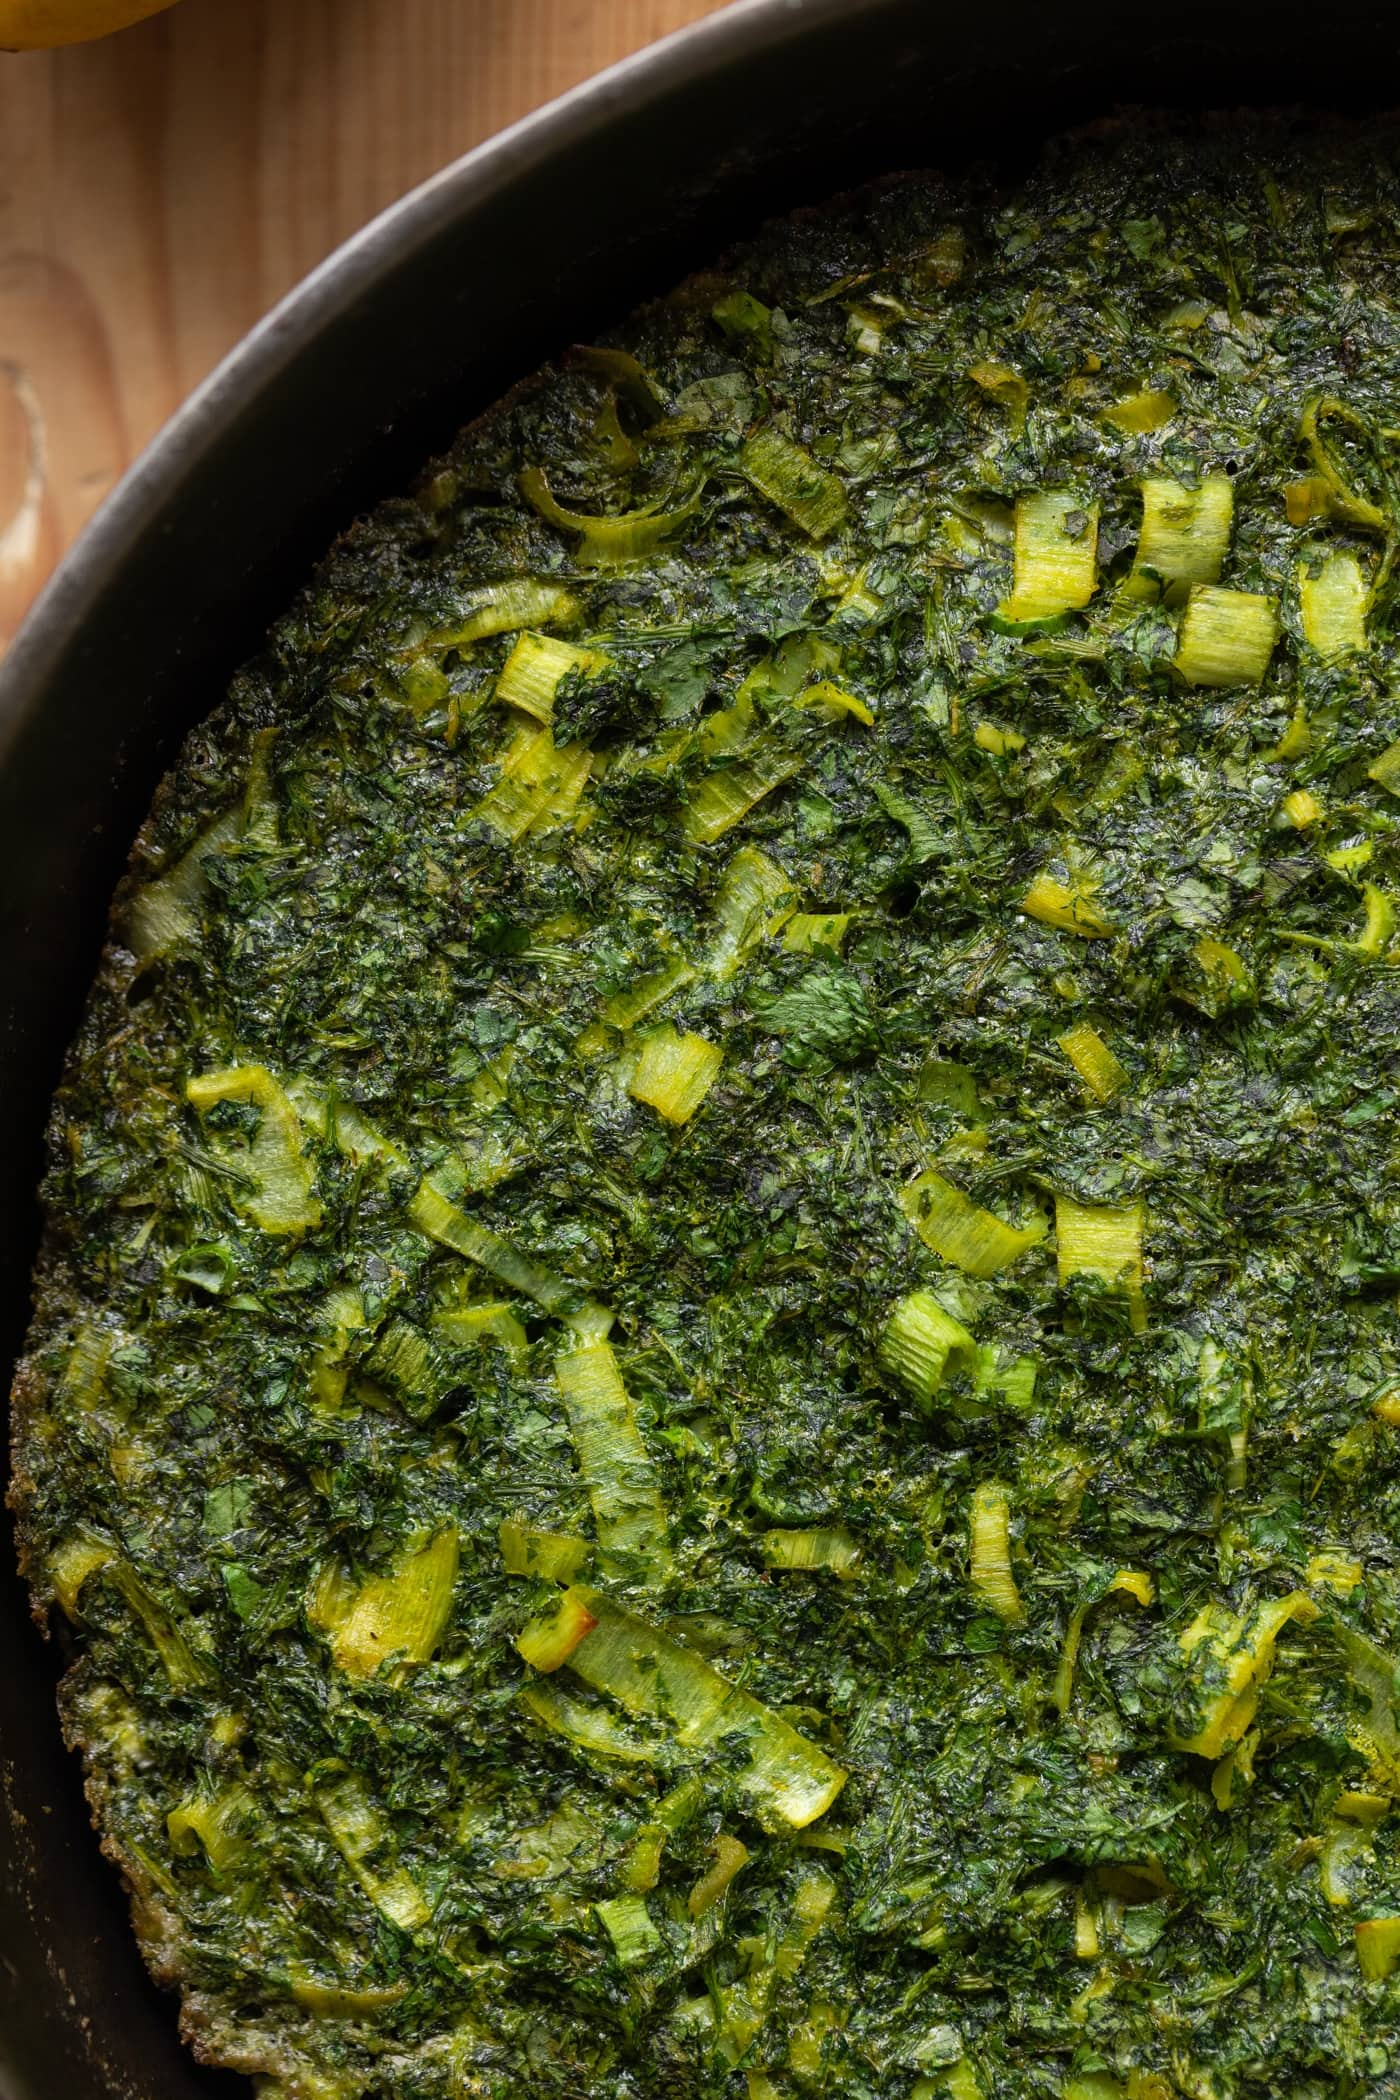 Top down view of herb omelet dotted with leeks and herbs in cast iron skillet on wood surface